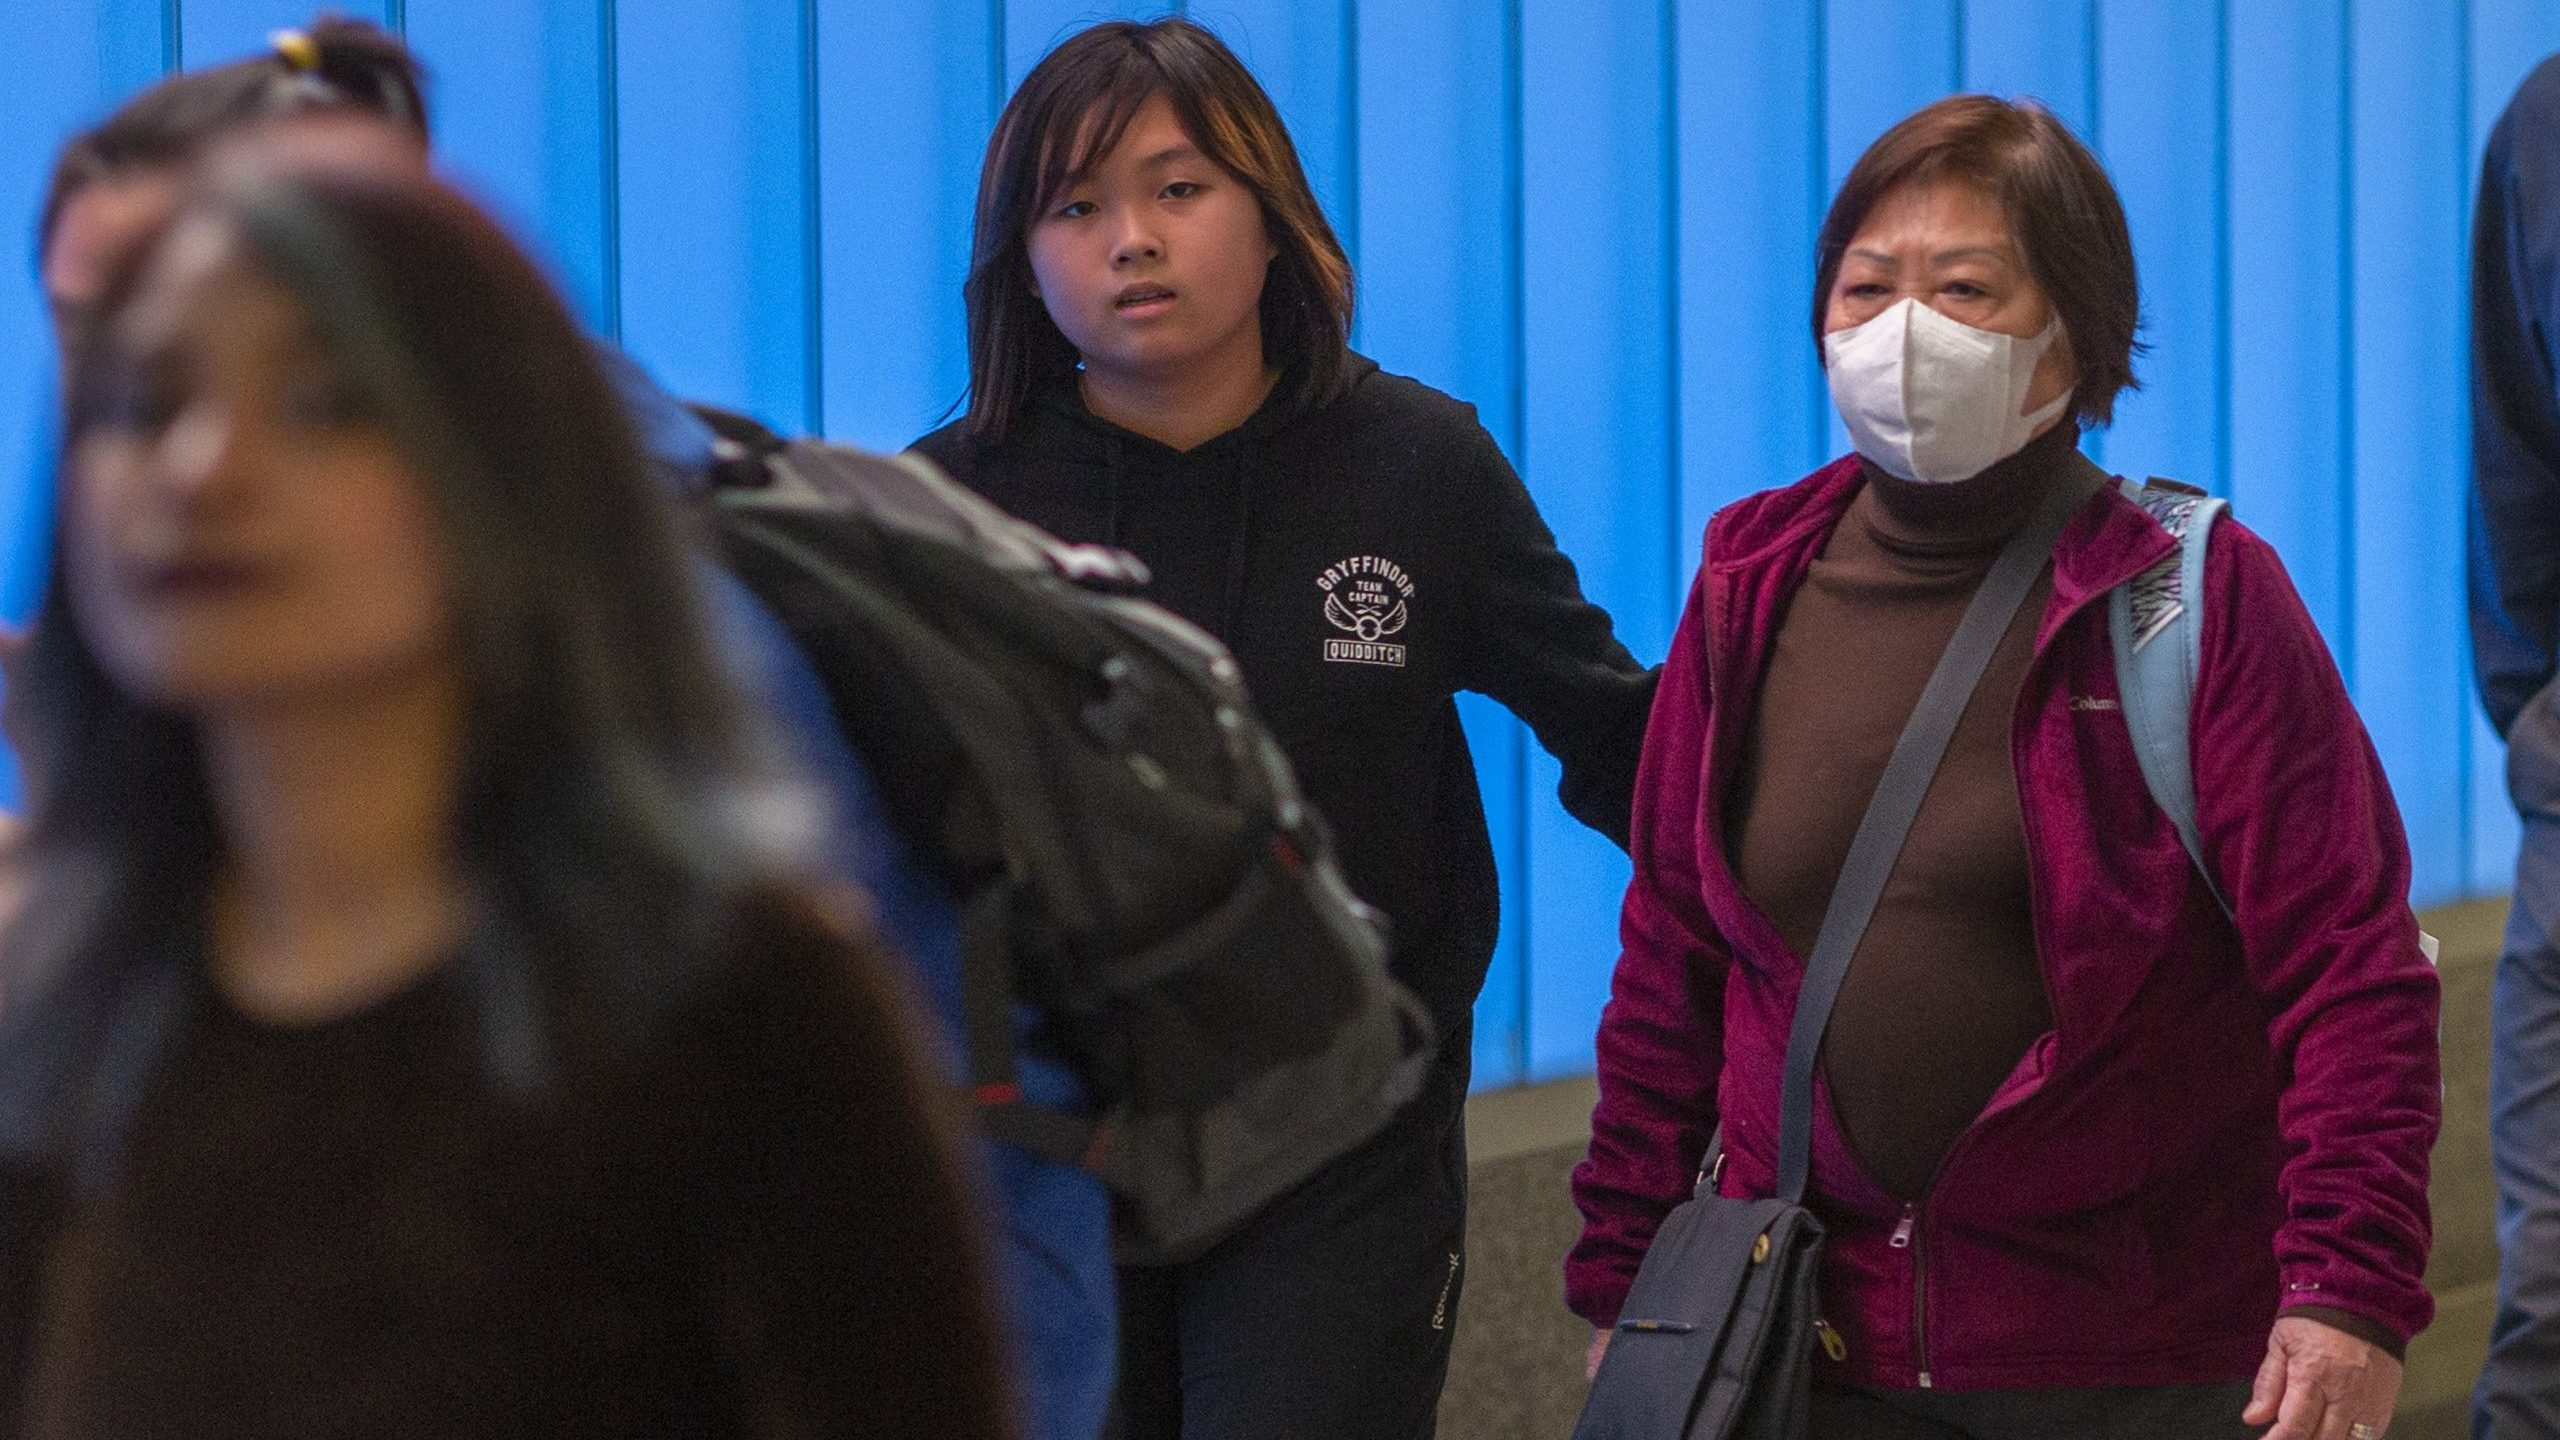 A woman arriving on an international flight to Los Angeles International Airport wears a mask on the first day of health screenings for coronavirus of travelers from Wuhan, China on Jan. 18, 2020. (Credit: David McNew/Getty Images)